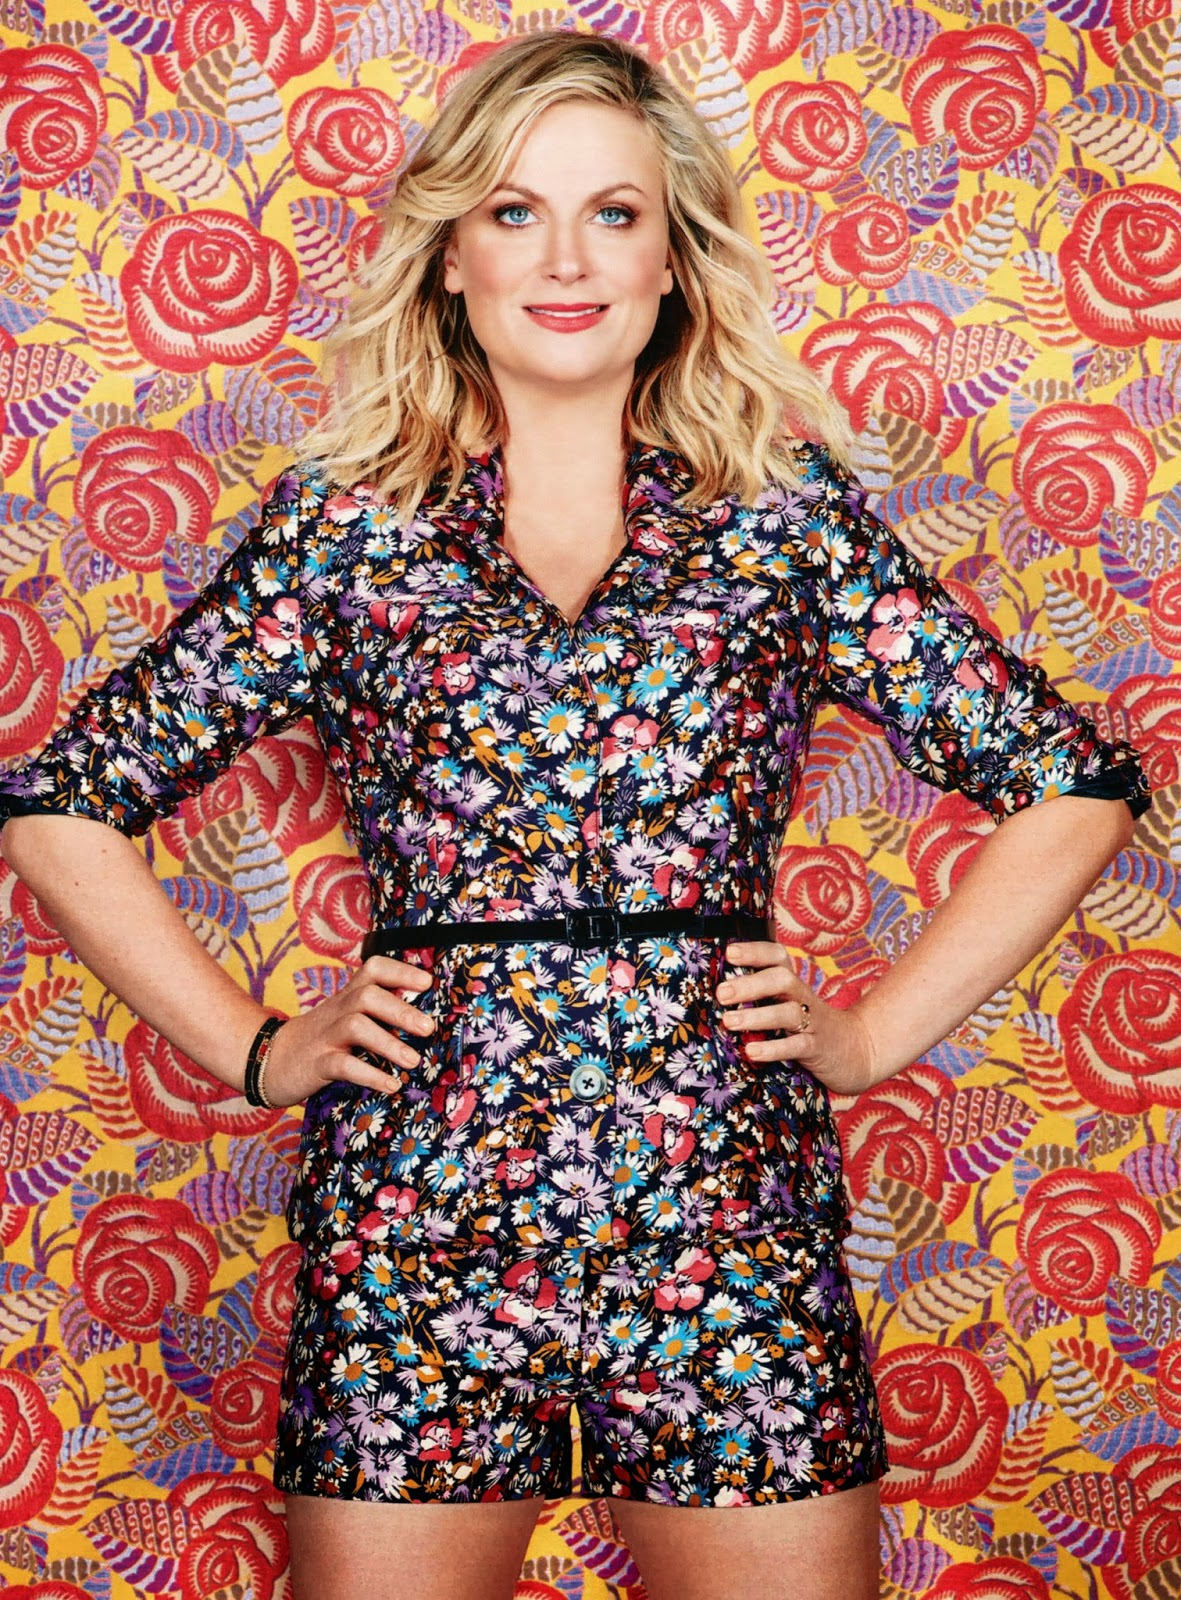 Amy Poehler HQ Pictures Ladies Home Journal US Magazine Photoshoot March 2014